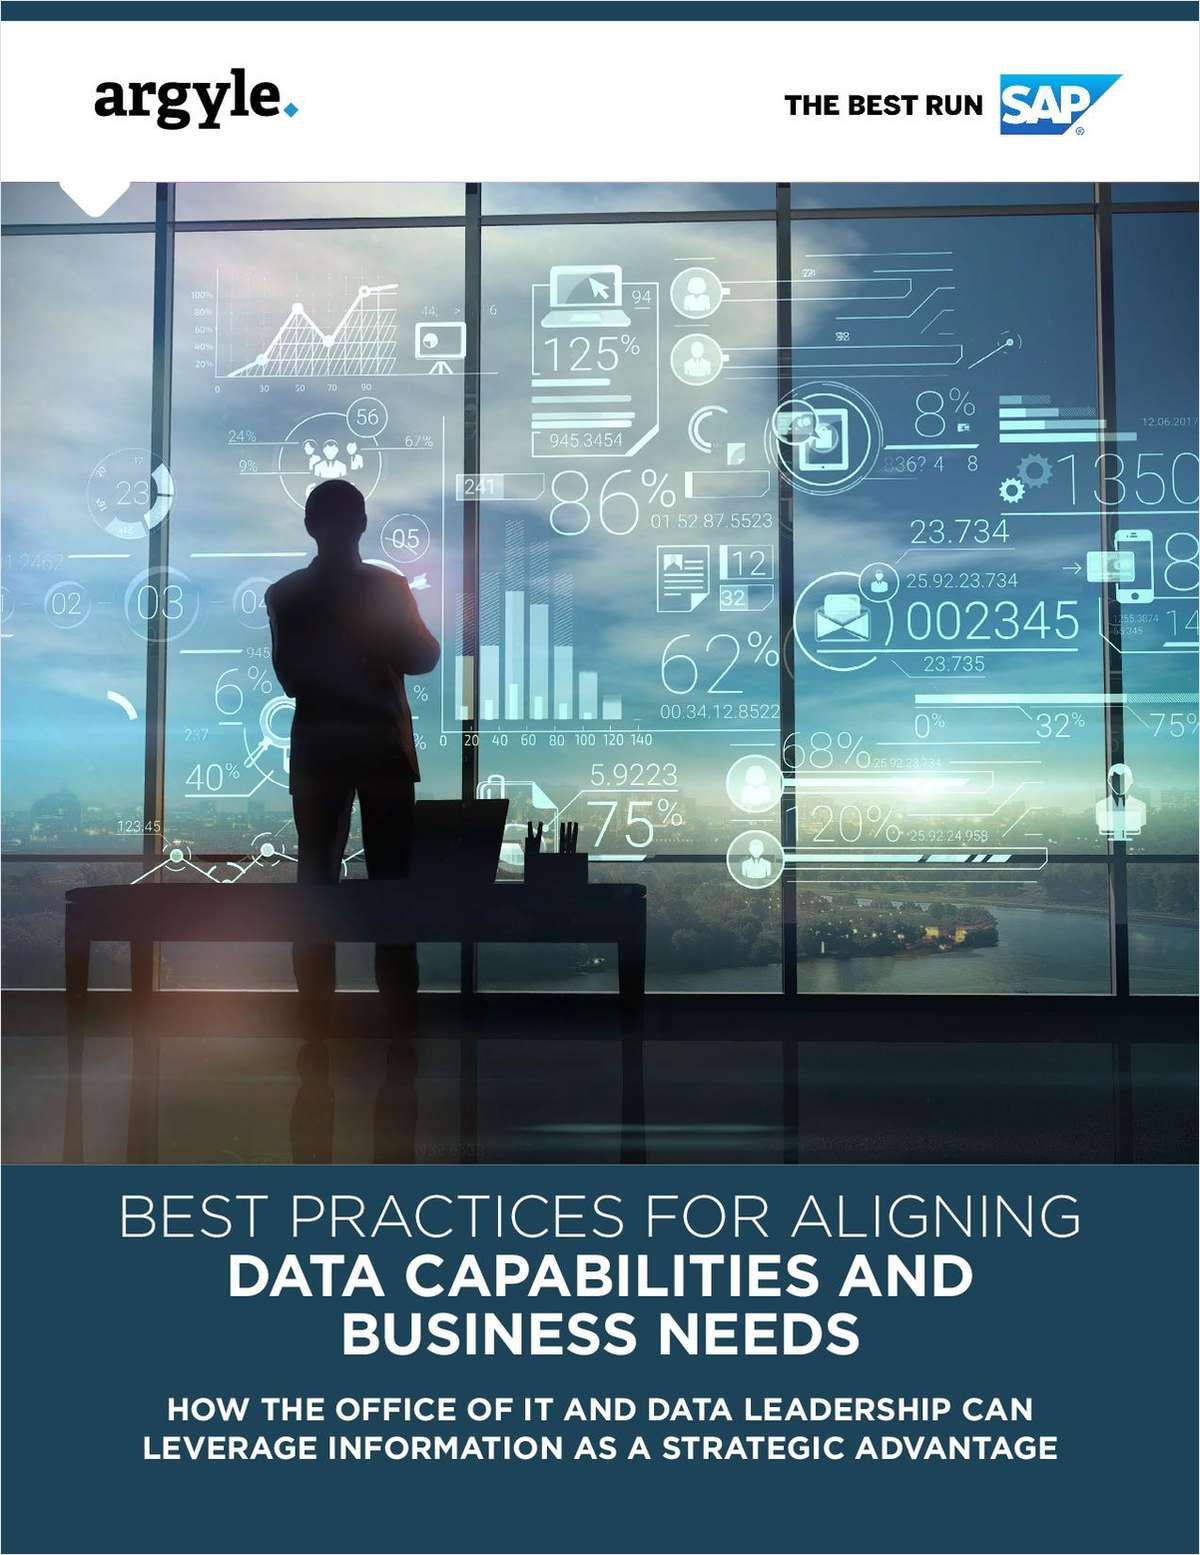 BEST PRACTICES FOR ALIGNING DATA CAPABILITIES AND BUSINESS NEEDS